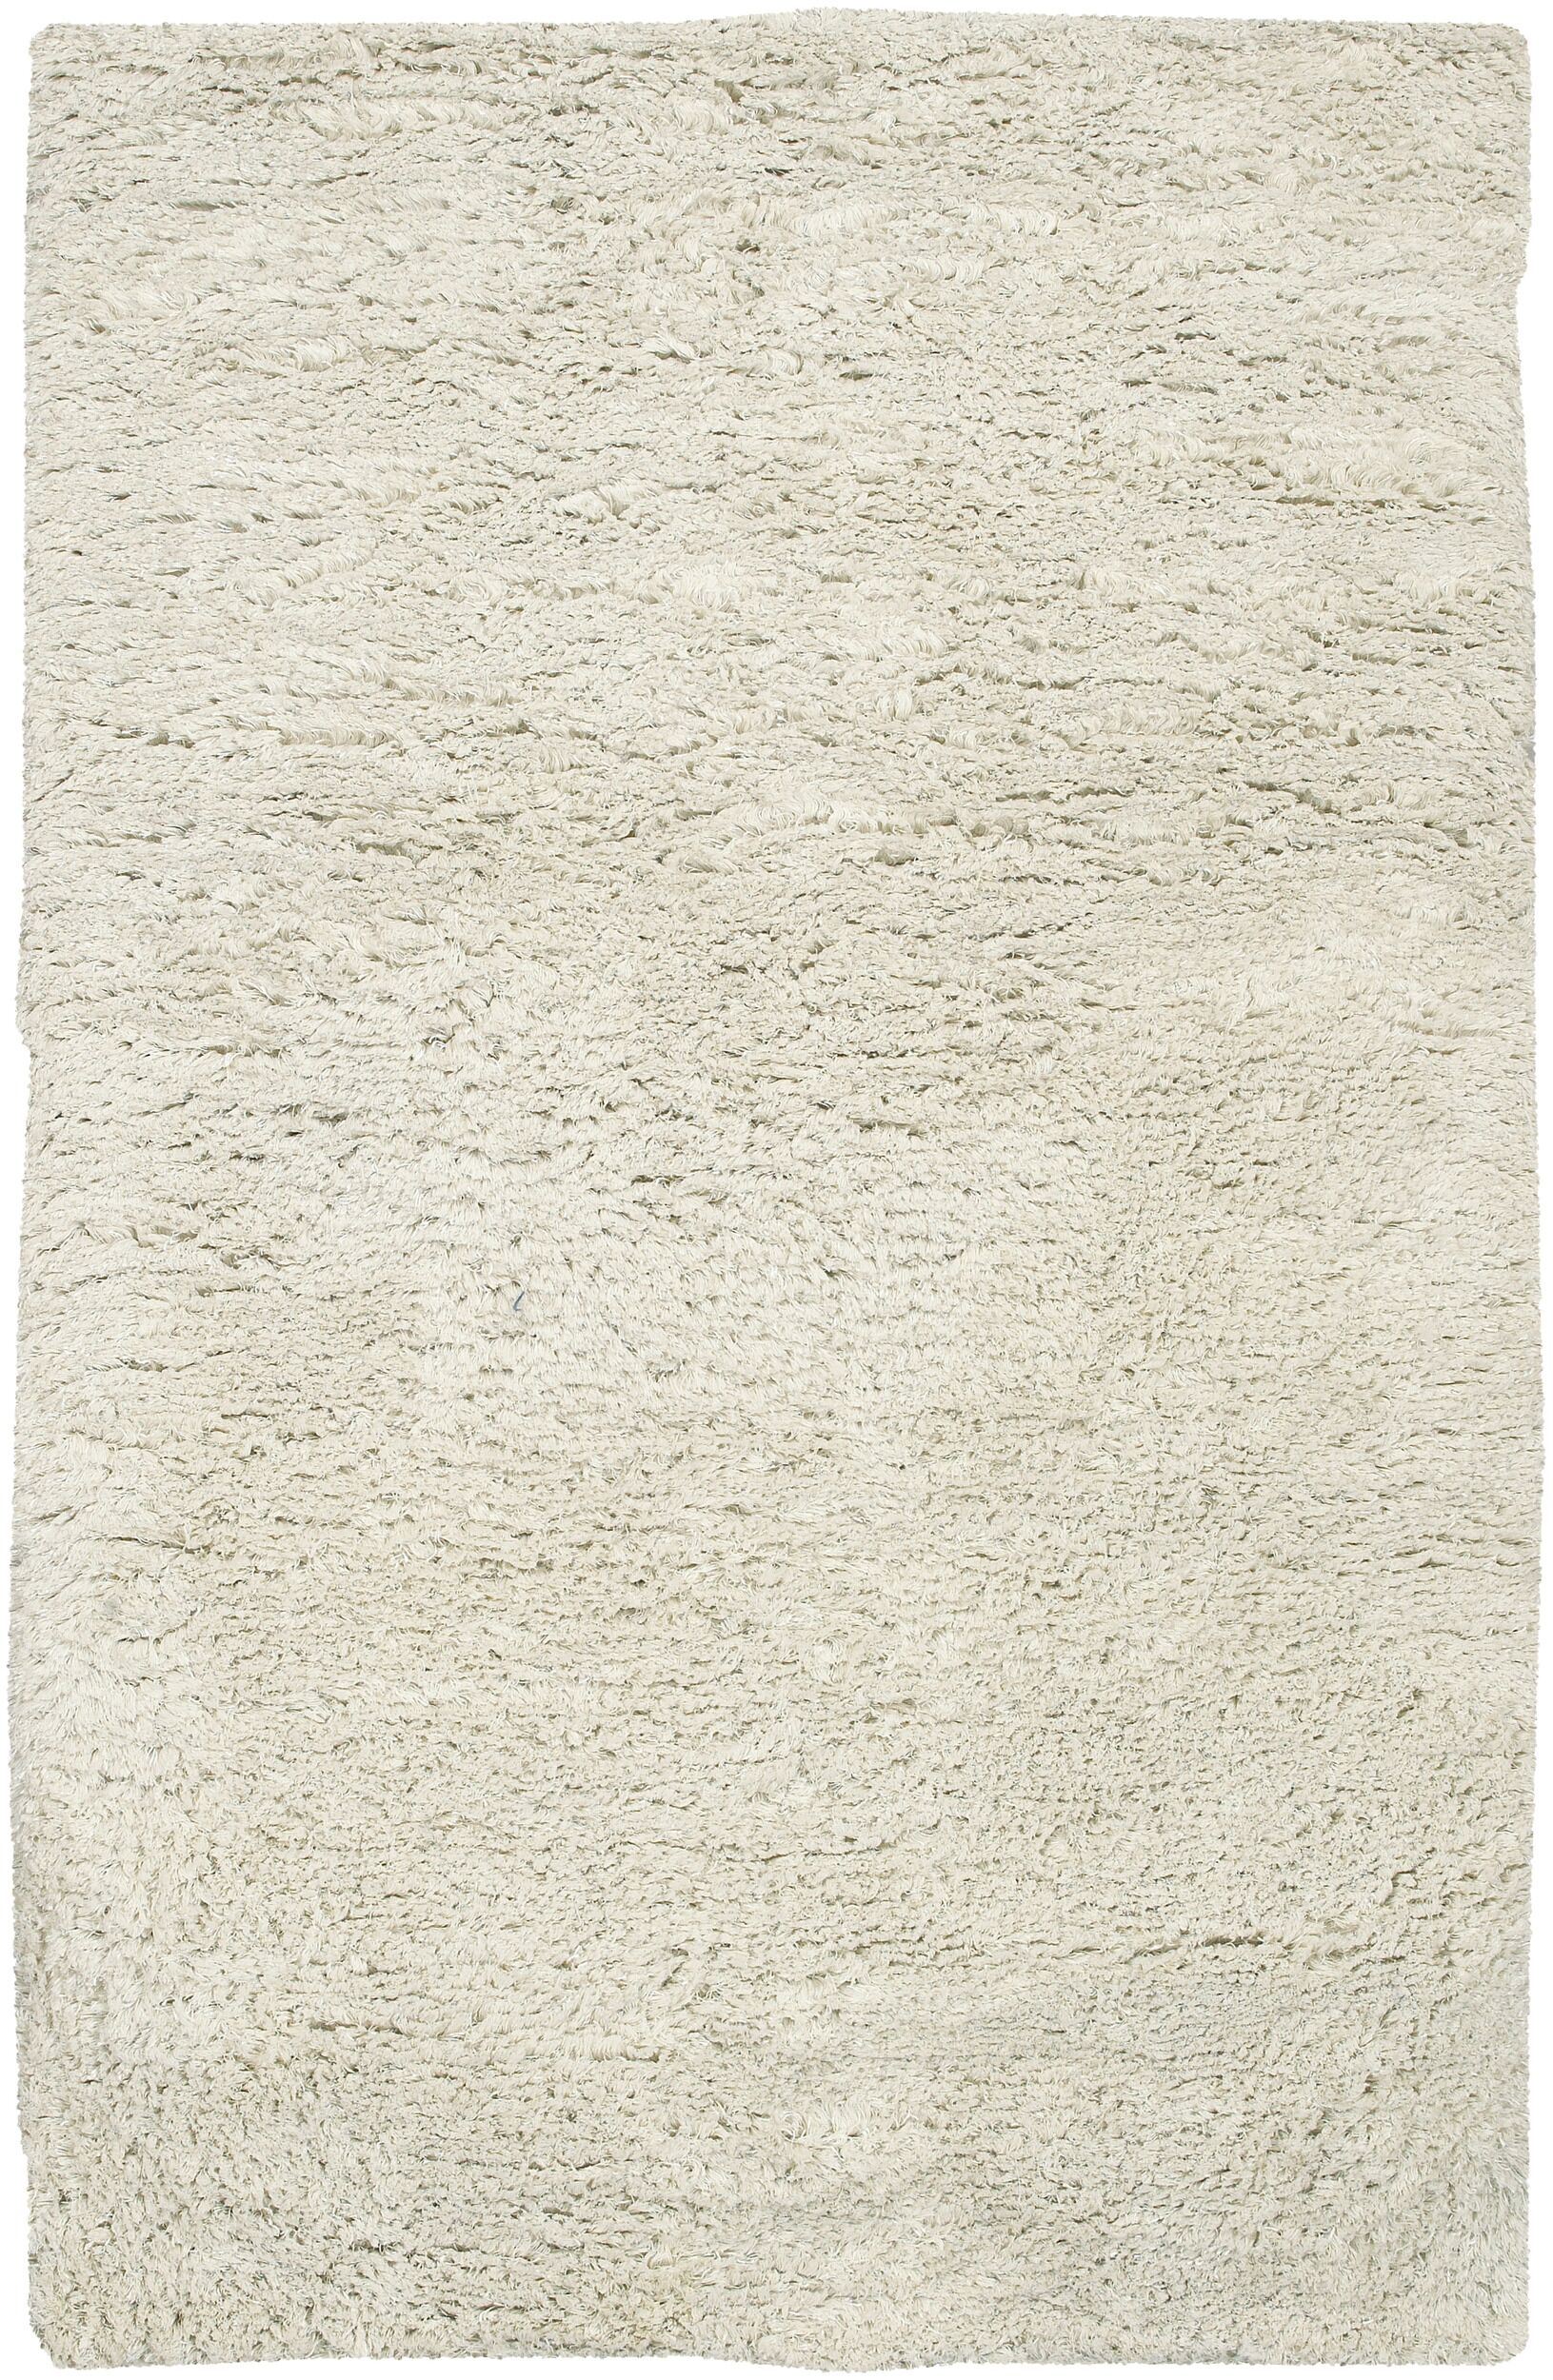 Gaston Hand Woven Wool Ivory Area Rug Rug Size: Rectangle 5' x 8'